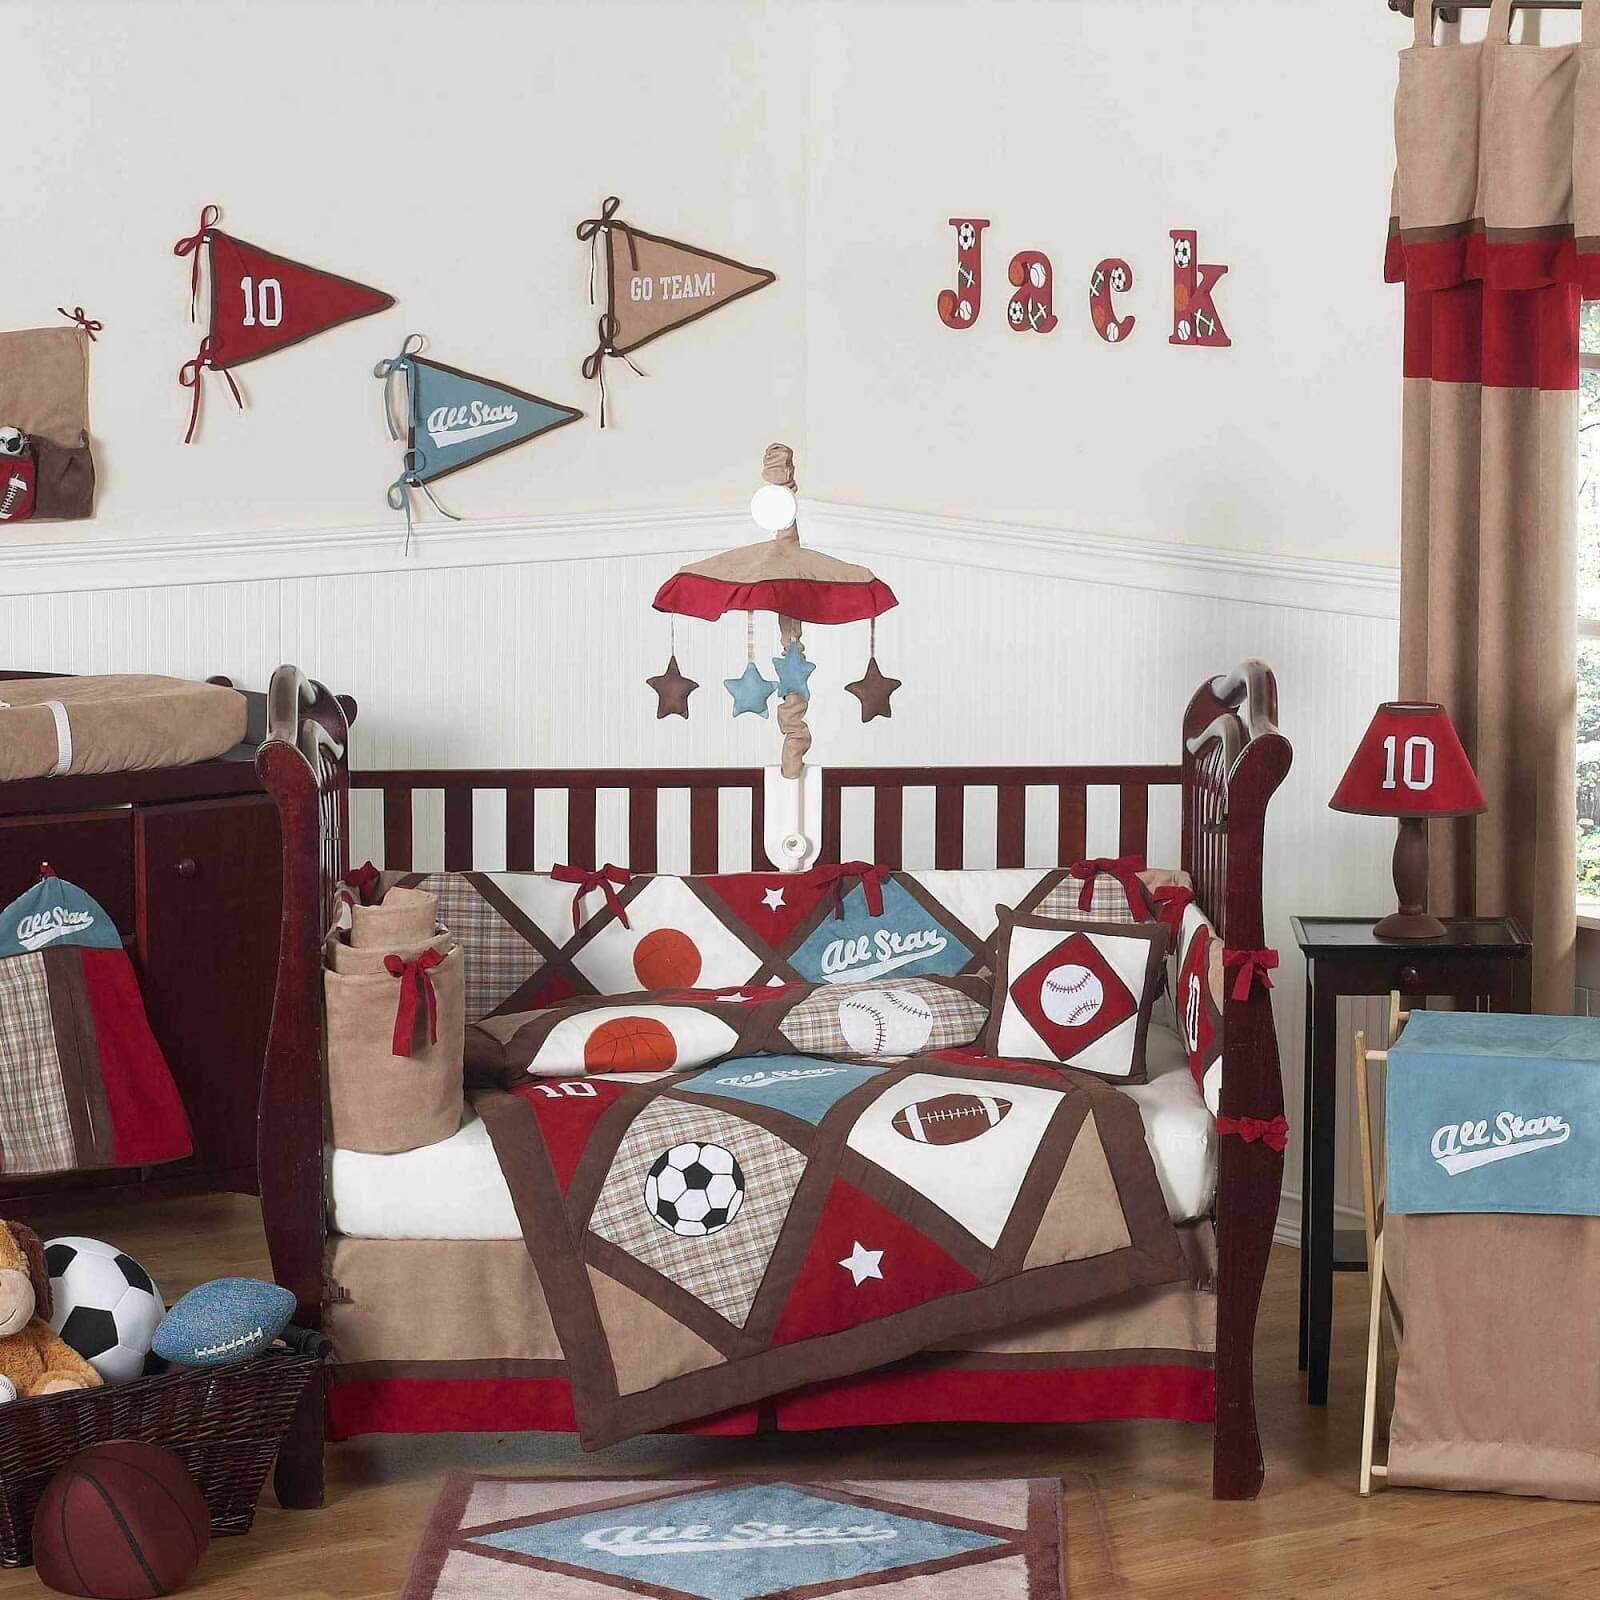 Sports Baby Boy Popular Bedroom Themes Cheap On A Budget Decor Unique  Concept For Small Spaces